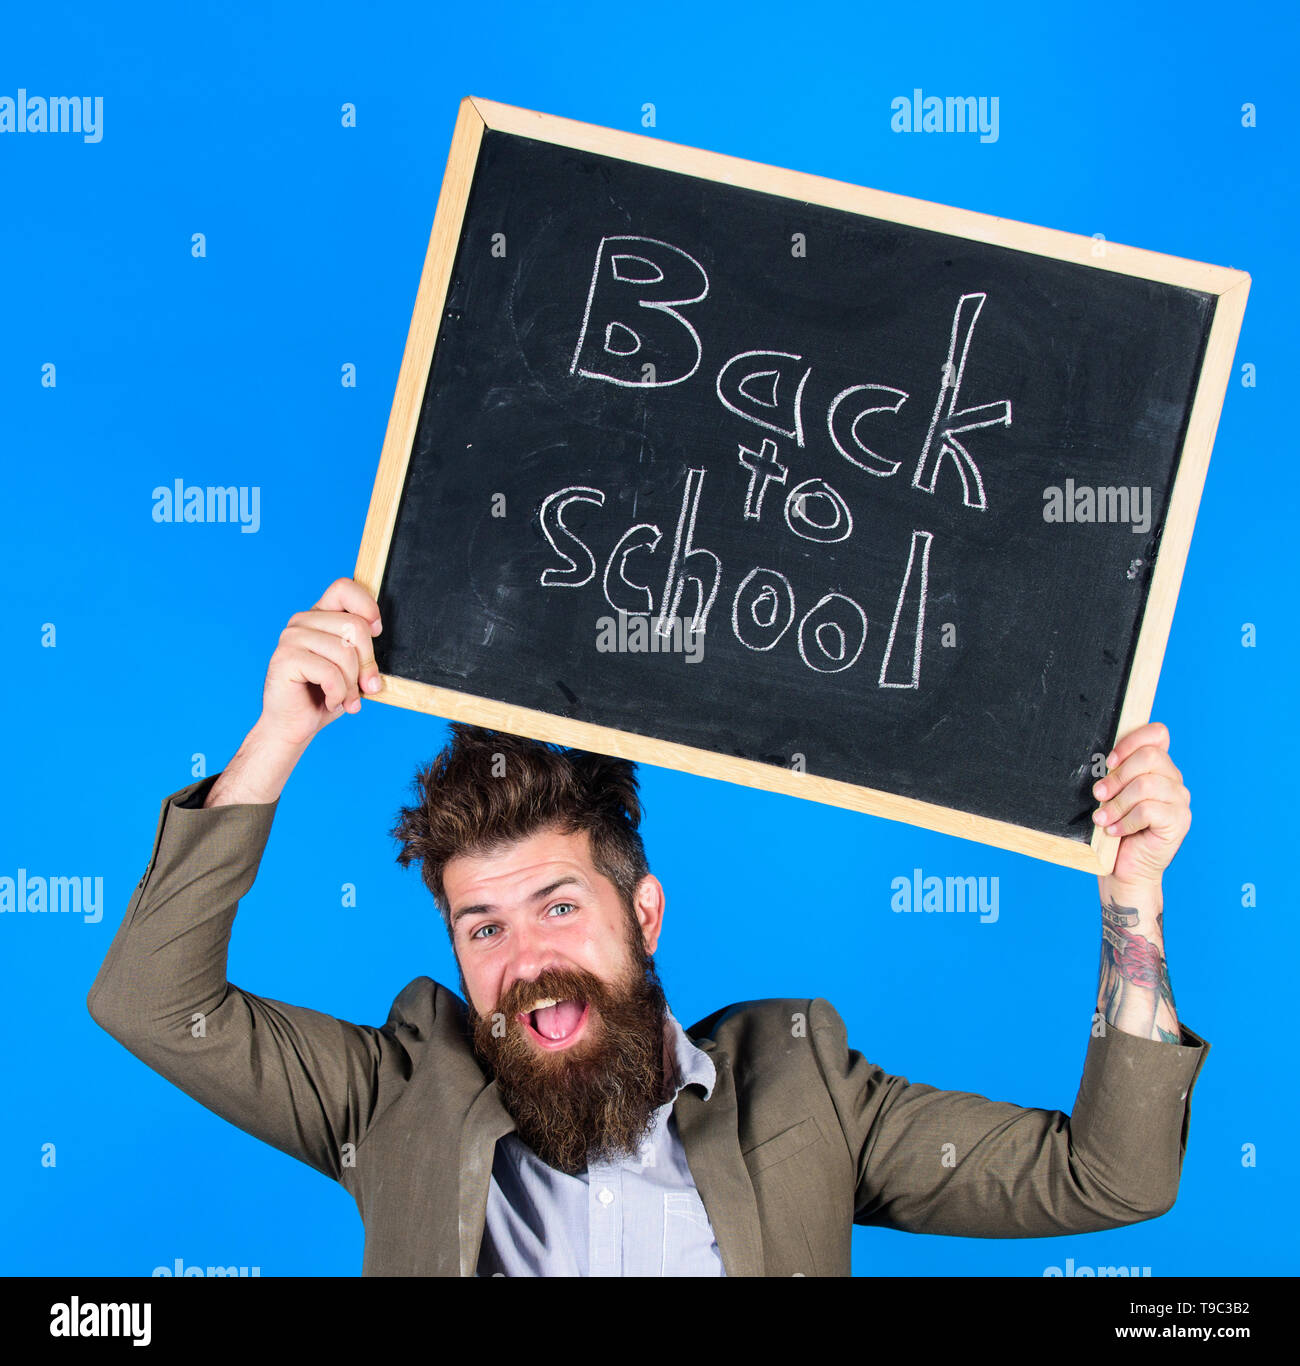 Stay positive. Teacher bearded man holds blackboard with inscription back to school blue background. Teacher with tousled hair cheerful about school year beginning. Keep working and be kind to people. Stock Photo